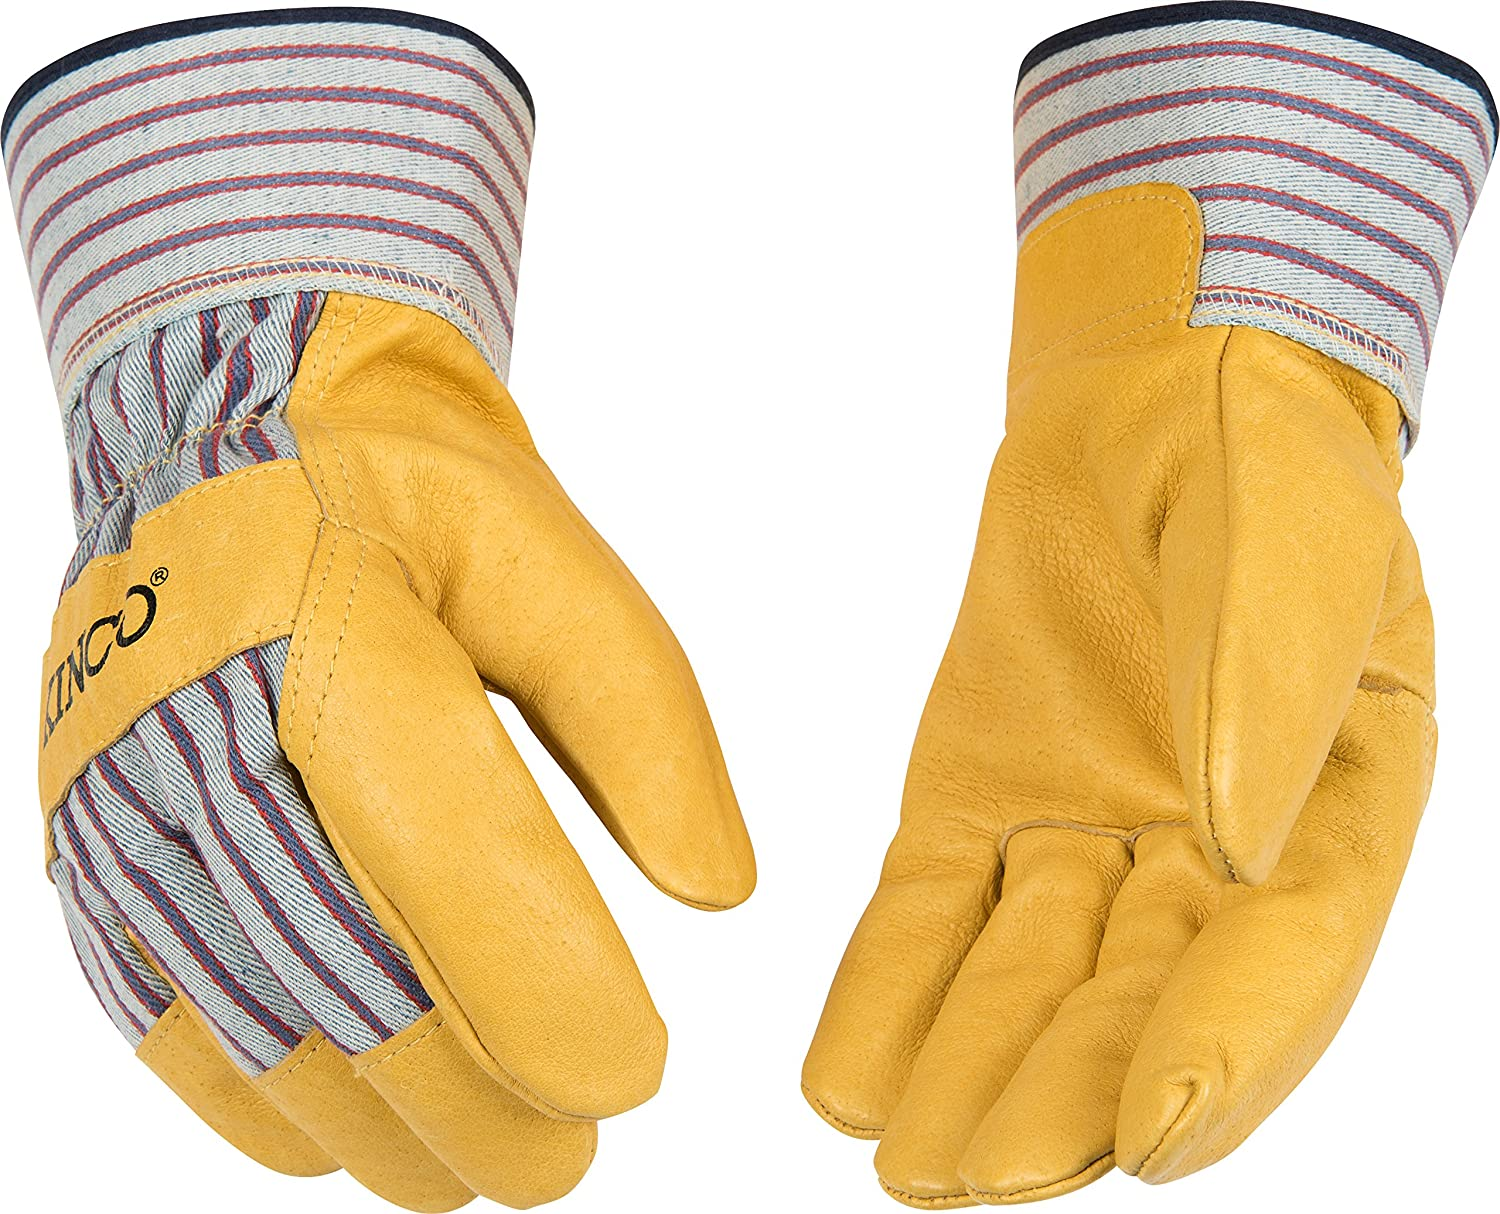 Kinco 1917 Unlined Grain Pigskin Leather Glove, Work, Large, Palomino (Pack of 6 Pairs) by KINCO INTERNATIONAL B00APL15W6